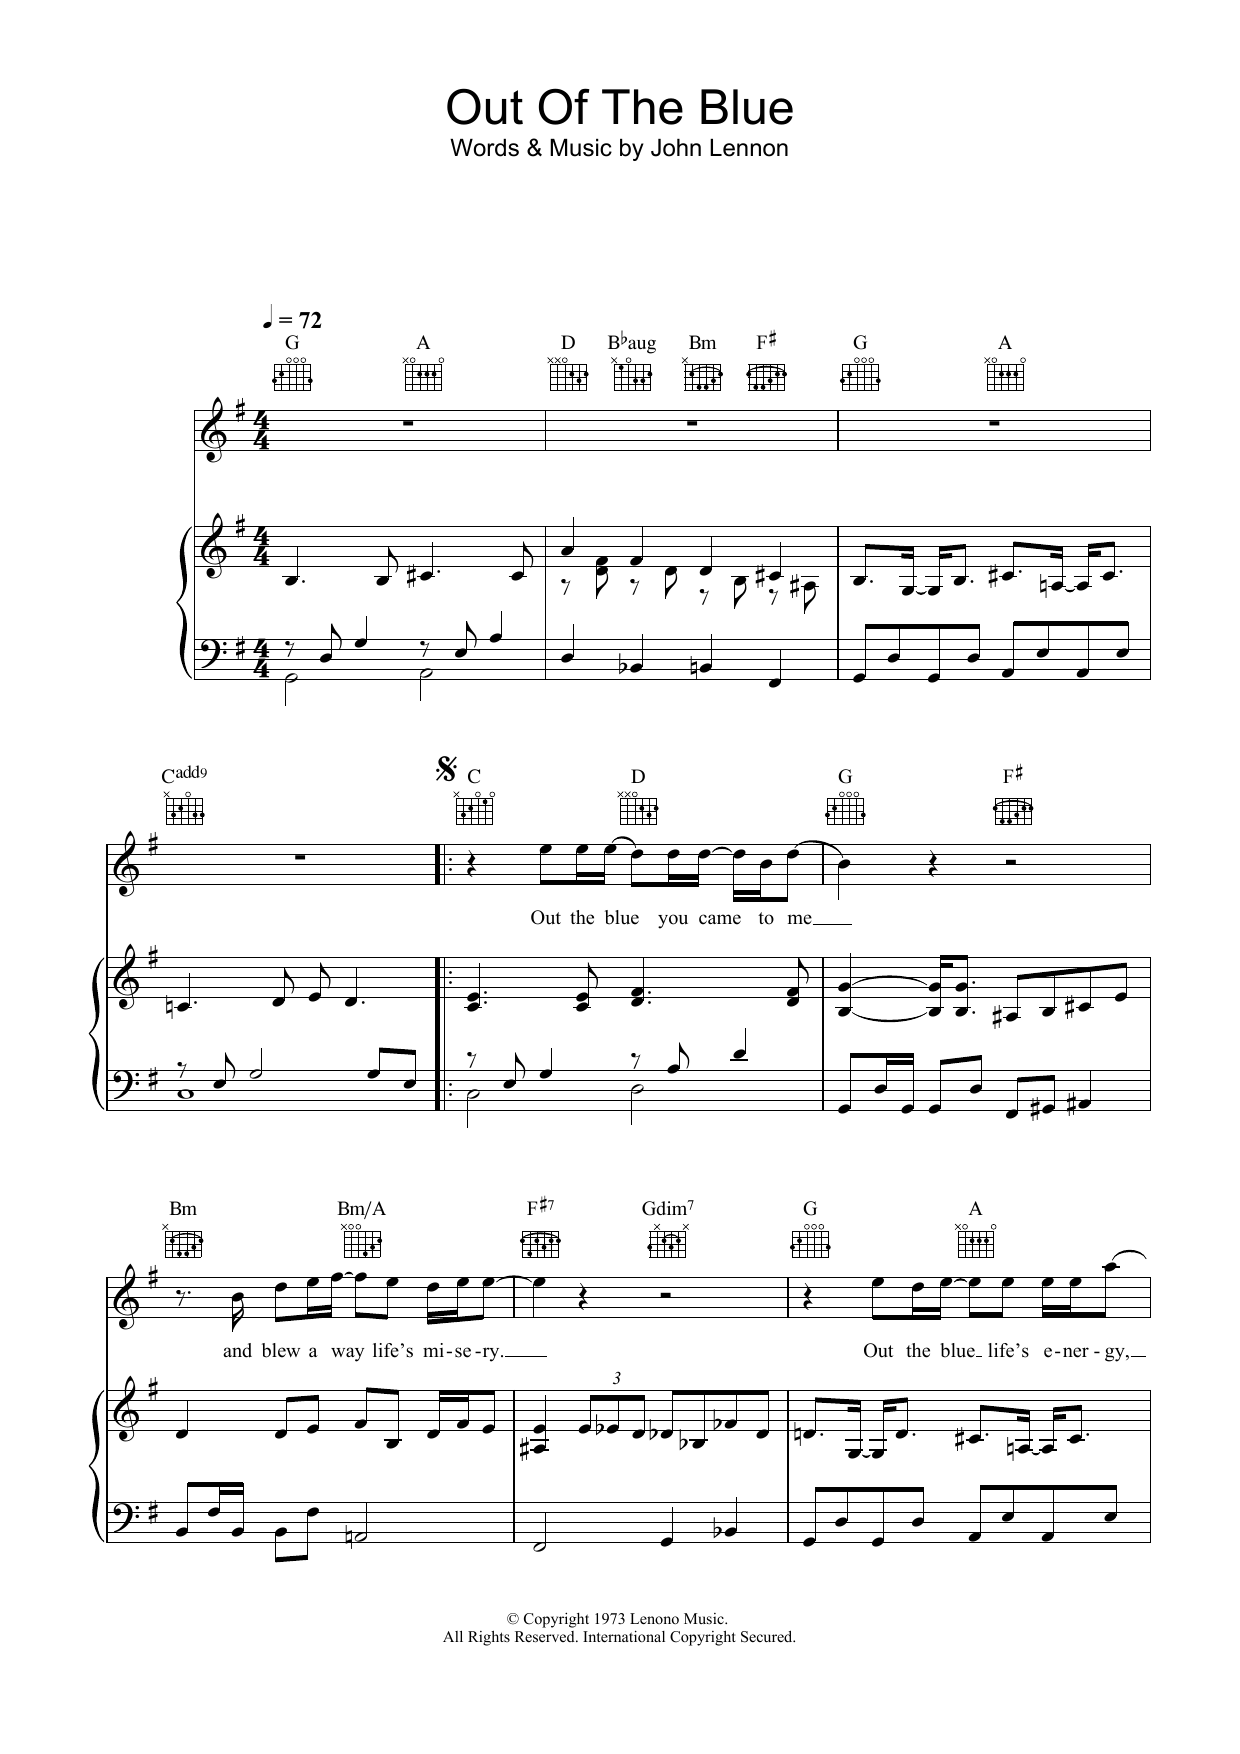 Out The Blue Sheet Music